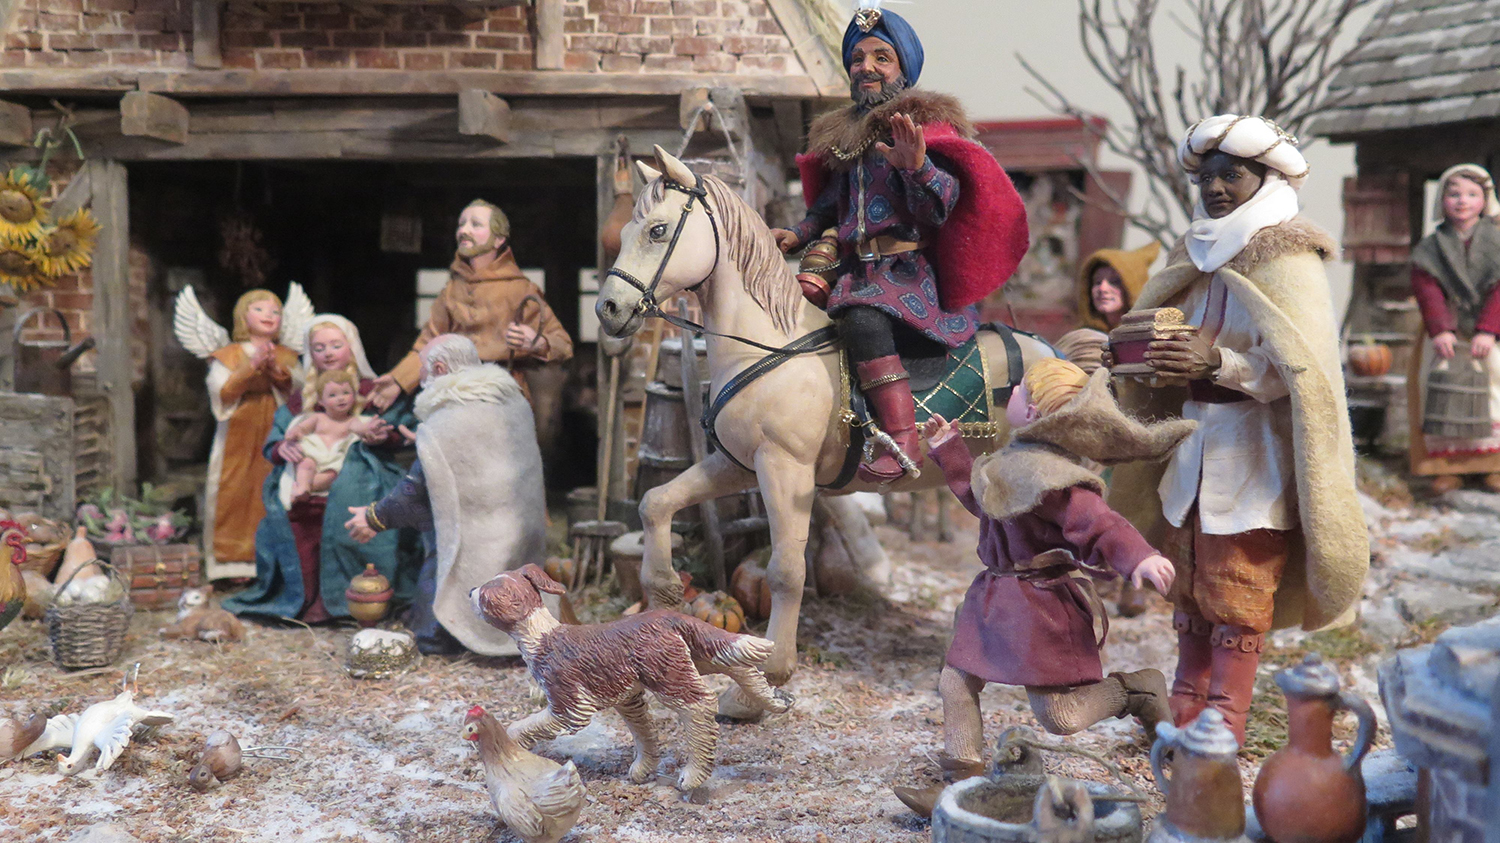 Figure 2: Three wise men arrive at the stable with gifts for the Christ Child. This three-dimensional Flemish Nativity was made by Karen Loccisano and her husband R. Michael Palan. Photo by R. Michael Palan.